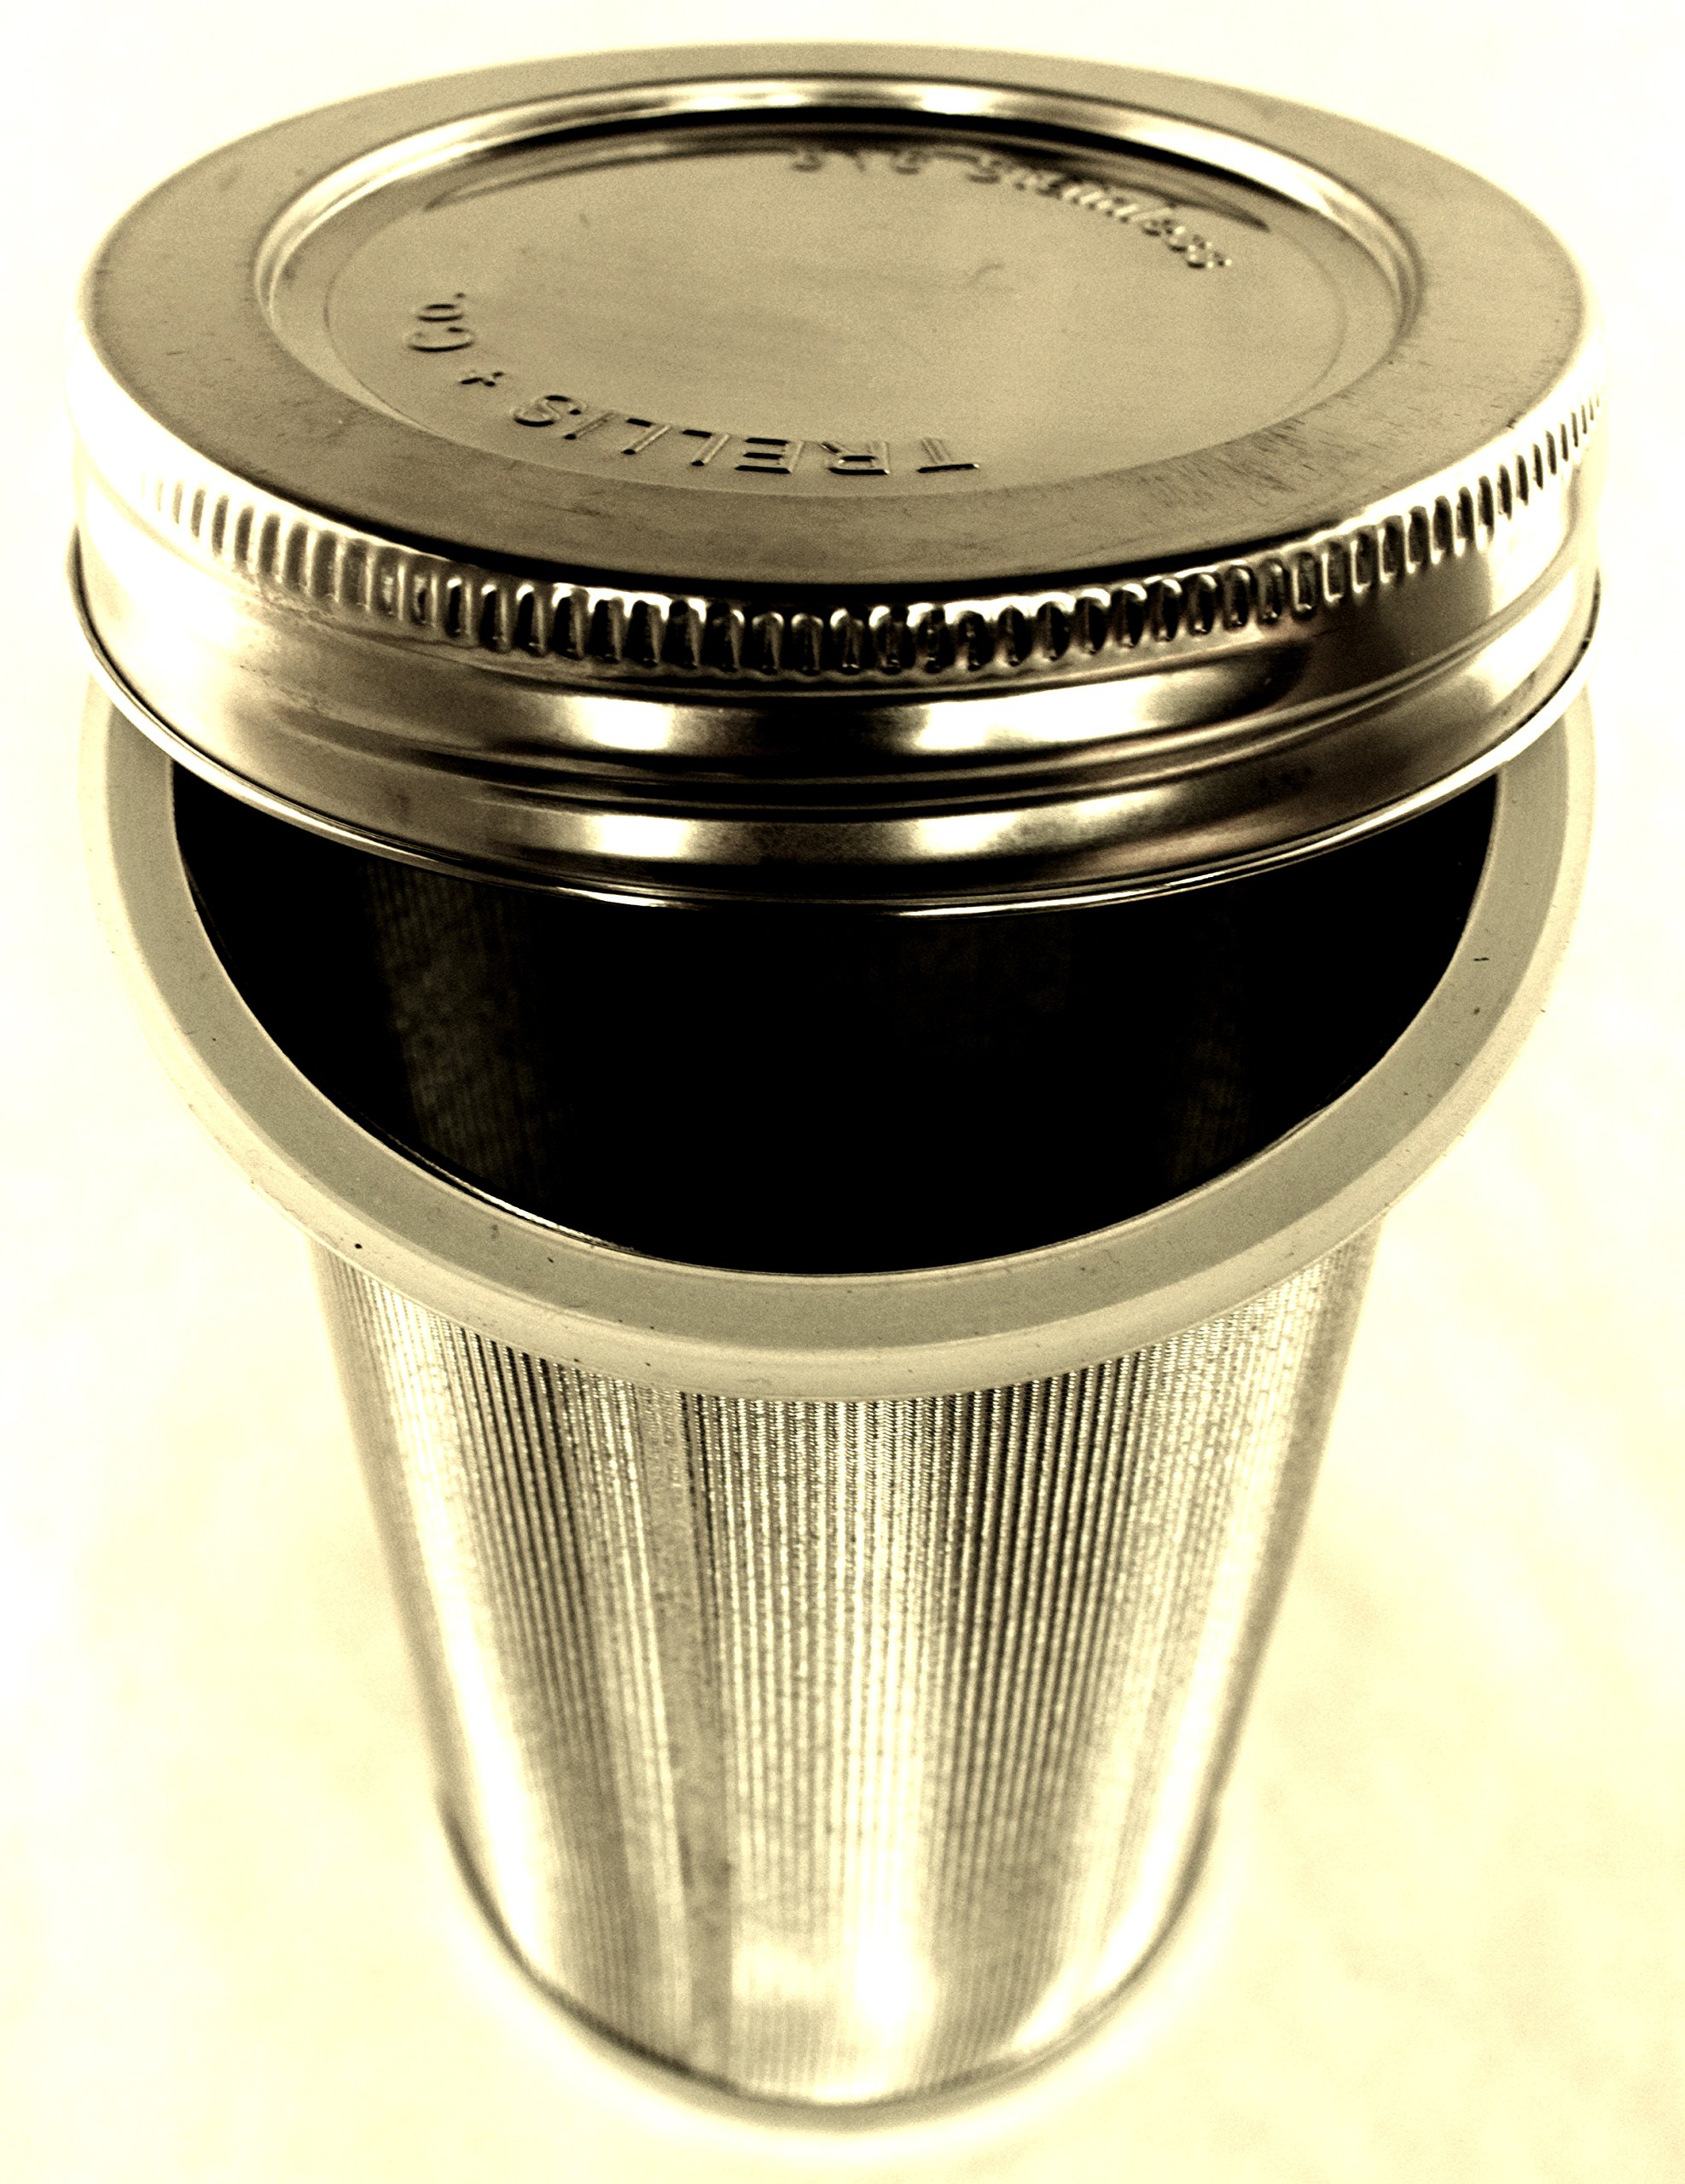 T&Co. Cold Brew Coffee Stainless Steel Filter & Lid - 80 Micron Woven Filter, Lid & Gaskets, Instructions - Make Cold Brewed Coffee/Iced Tea/Steeped Sun Tea - Fits Wide Mouthed Mason Jars